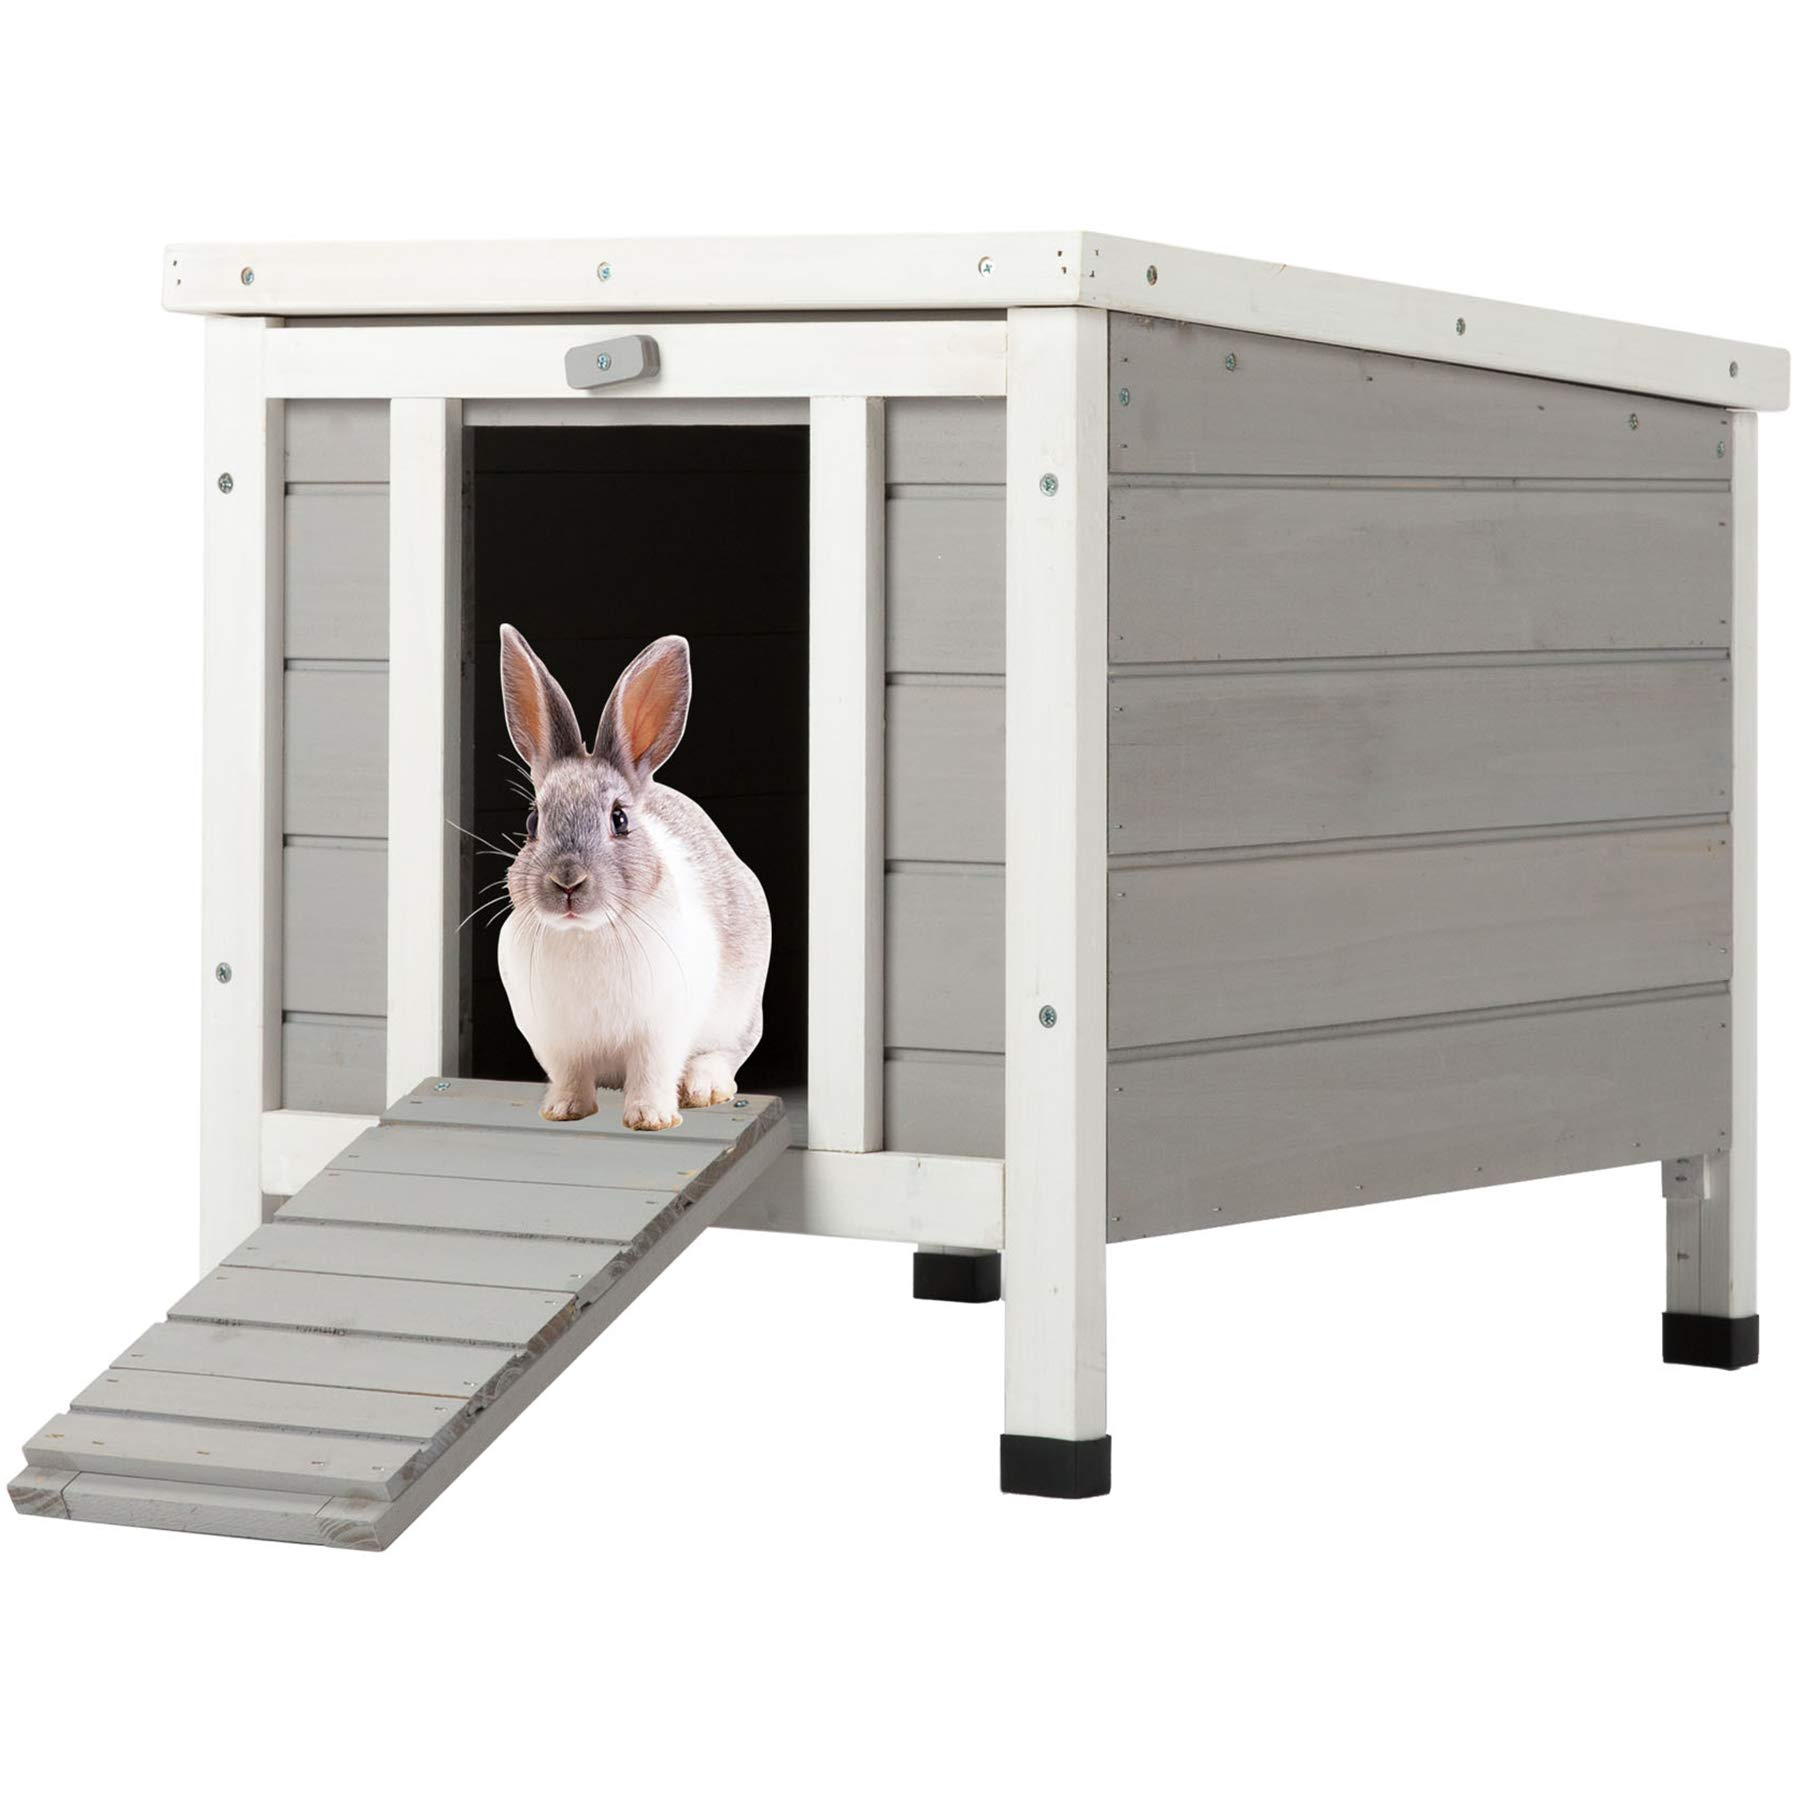 CO-Z Topnotch Weatherproof Outdoor Wooden Bunny Rabbit Hutch Pet Cage Cat Shelter in White by CO-Z